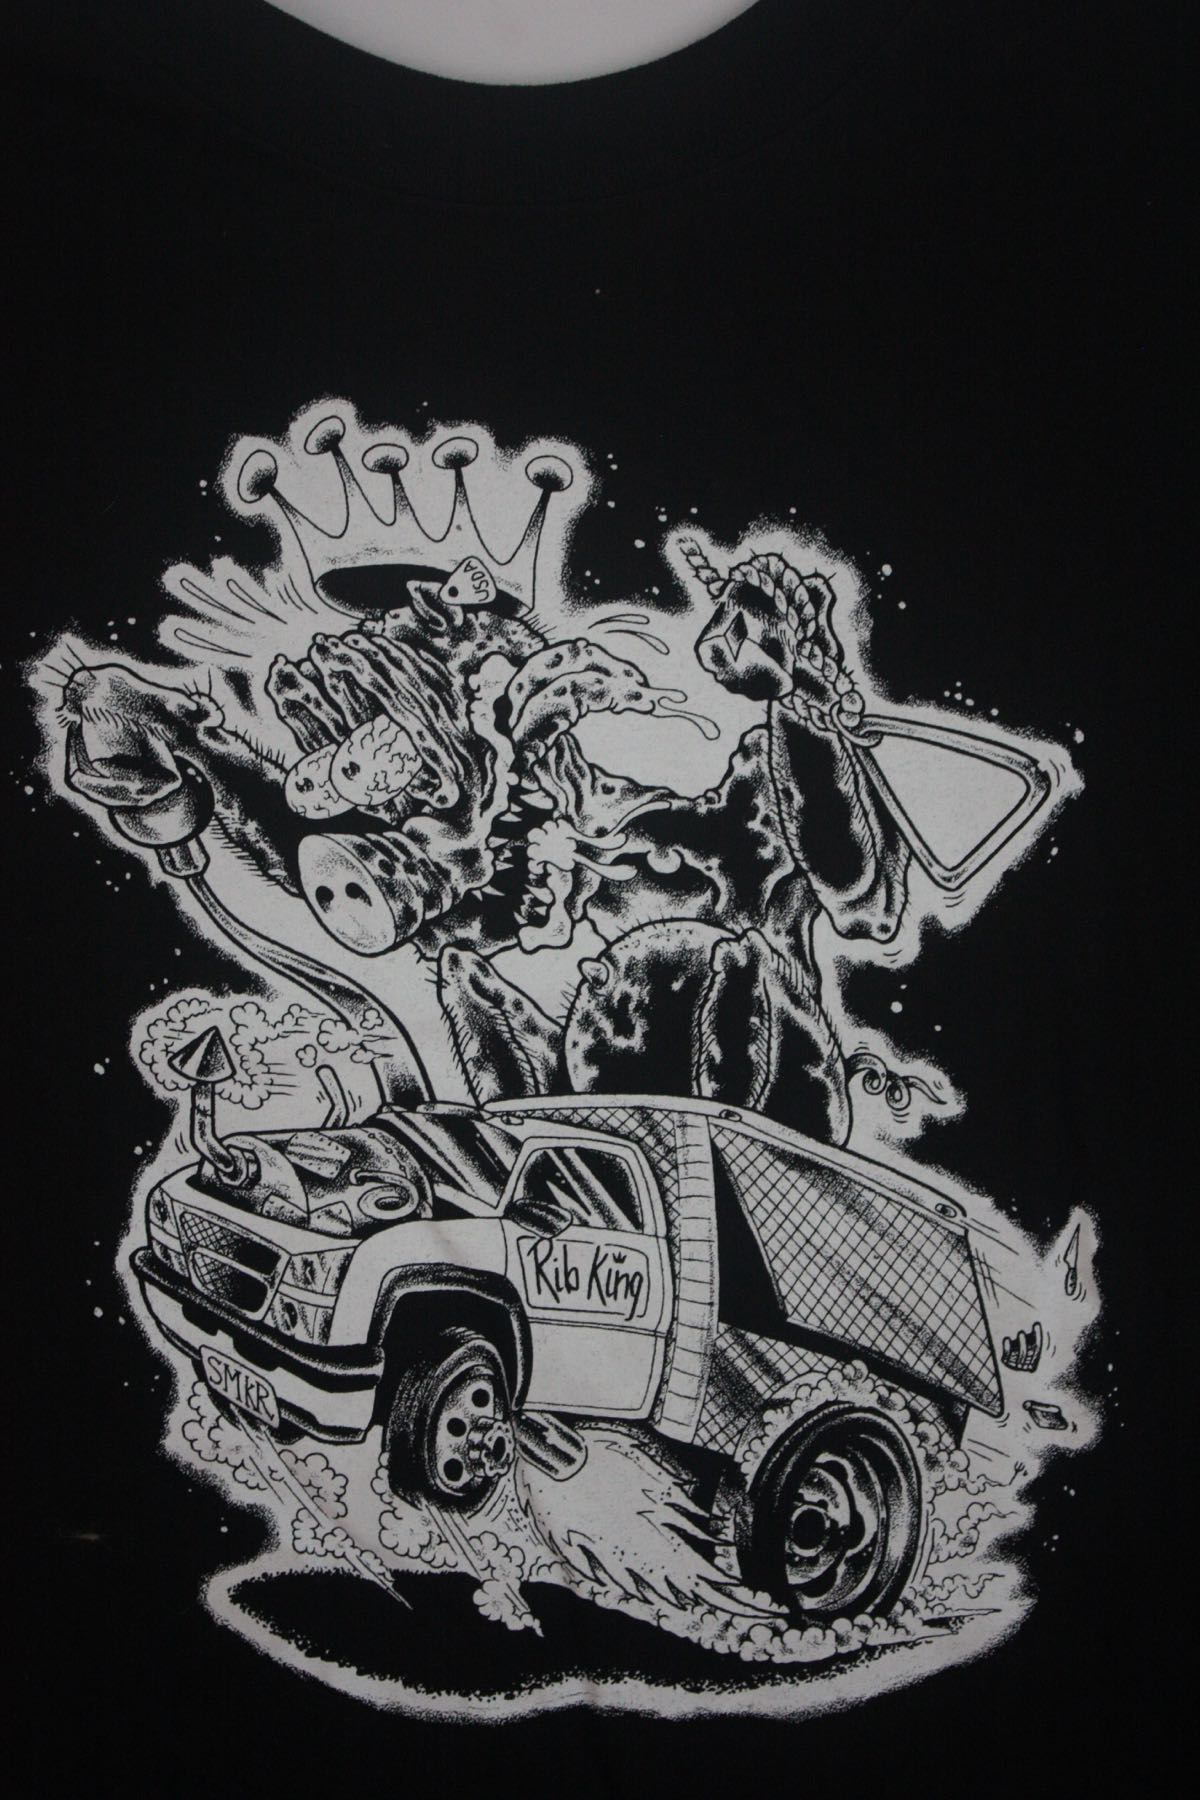 Santa Cruz Rib King Barbecue Food Truck Tee 1